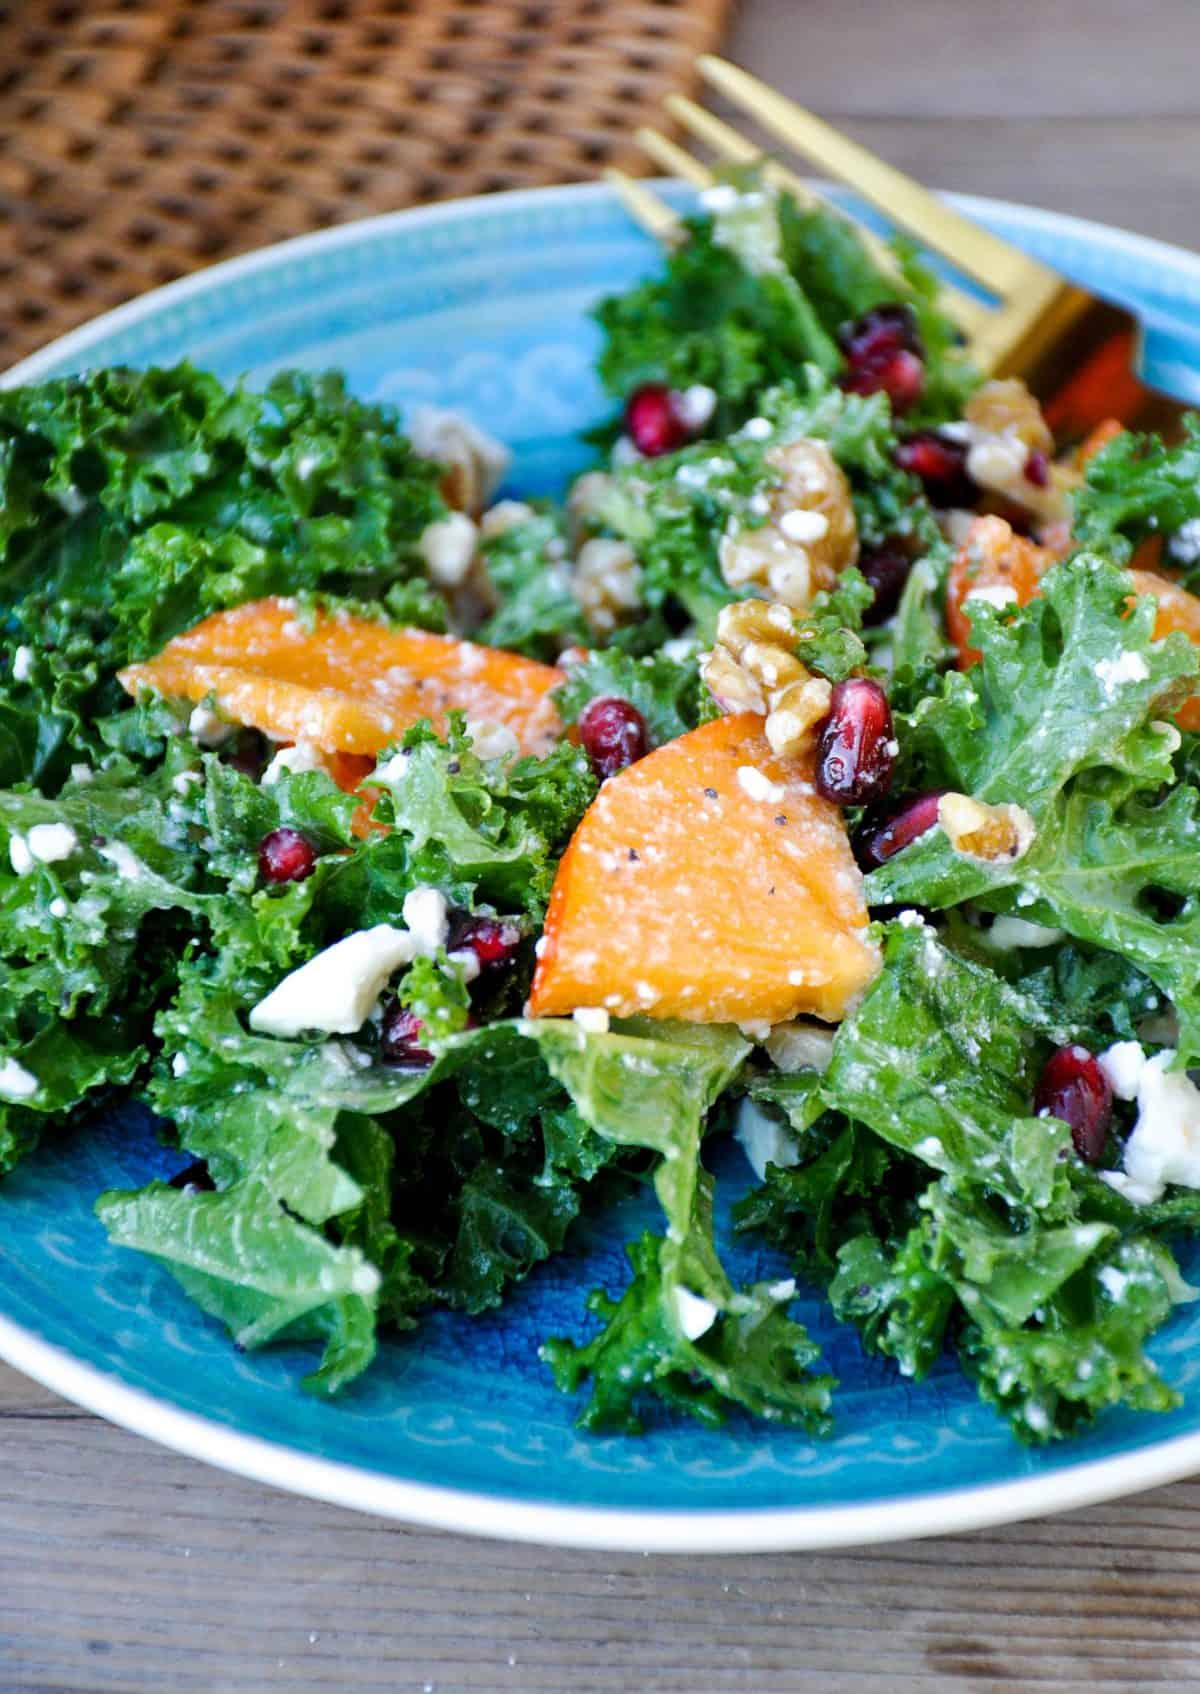 Kale Salad with persimmons, pomegranates and leafy greens